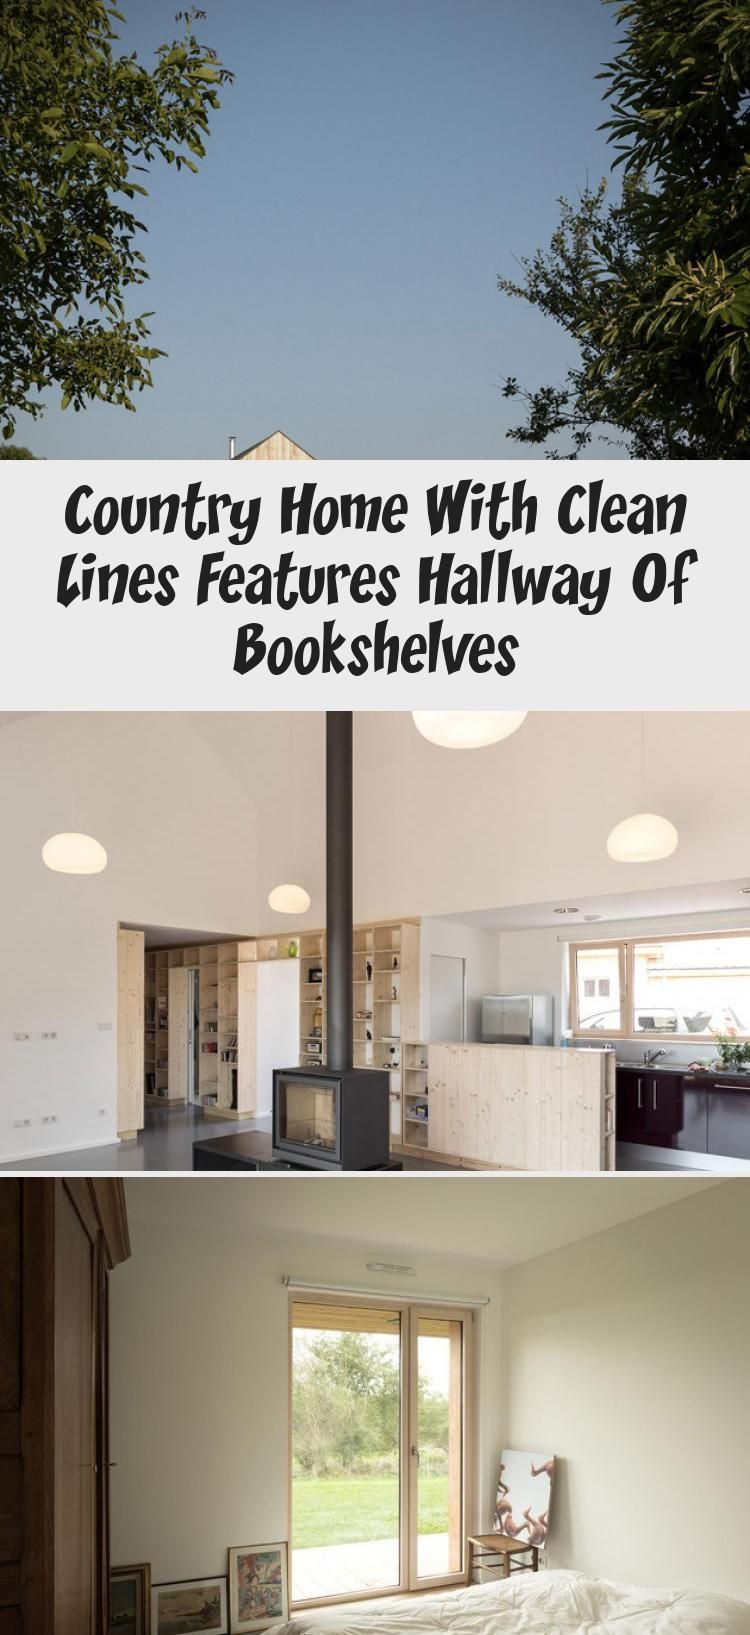 Country Home With Clean Lines Features Hallway Of Bookshelves #hallwaybookshelves Country Home with Clean Lines features Hallway of Bookshelves #countryhomeOutdoor #countryhomeHallway #countryhomeAustralian #countryhomeFacade #countryhomeLandscaping #hallwaybookshelves